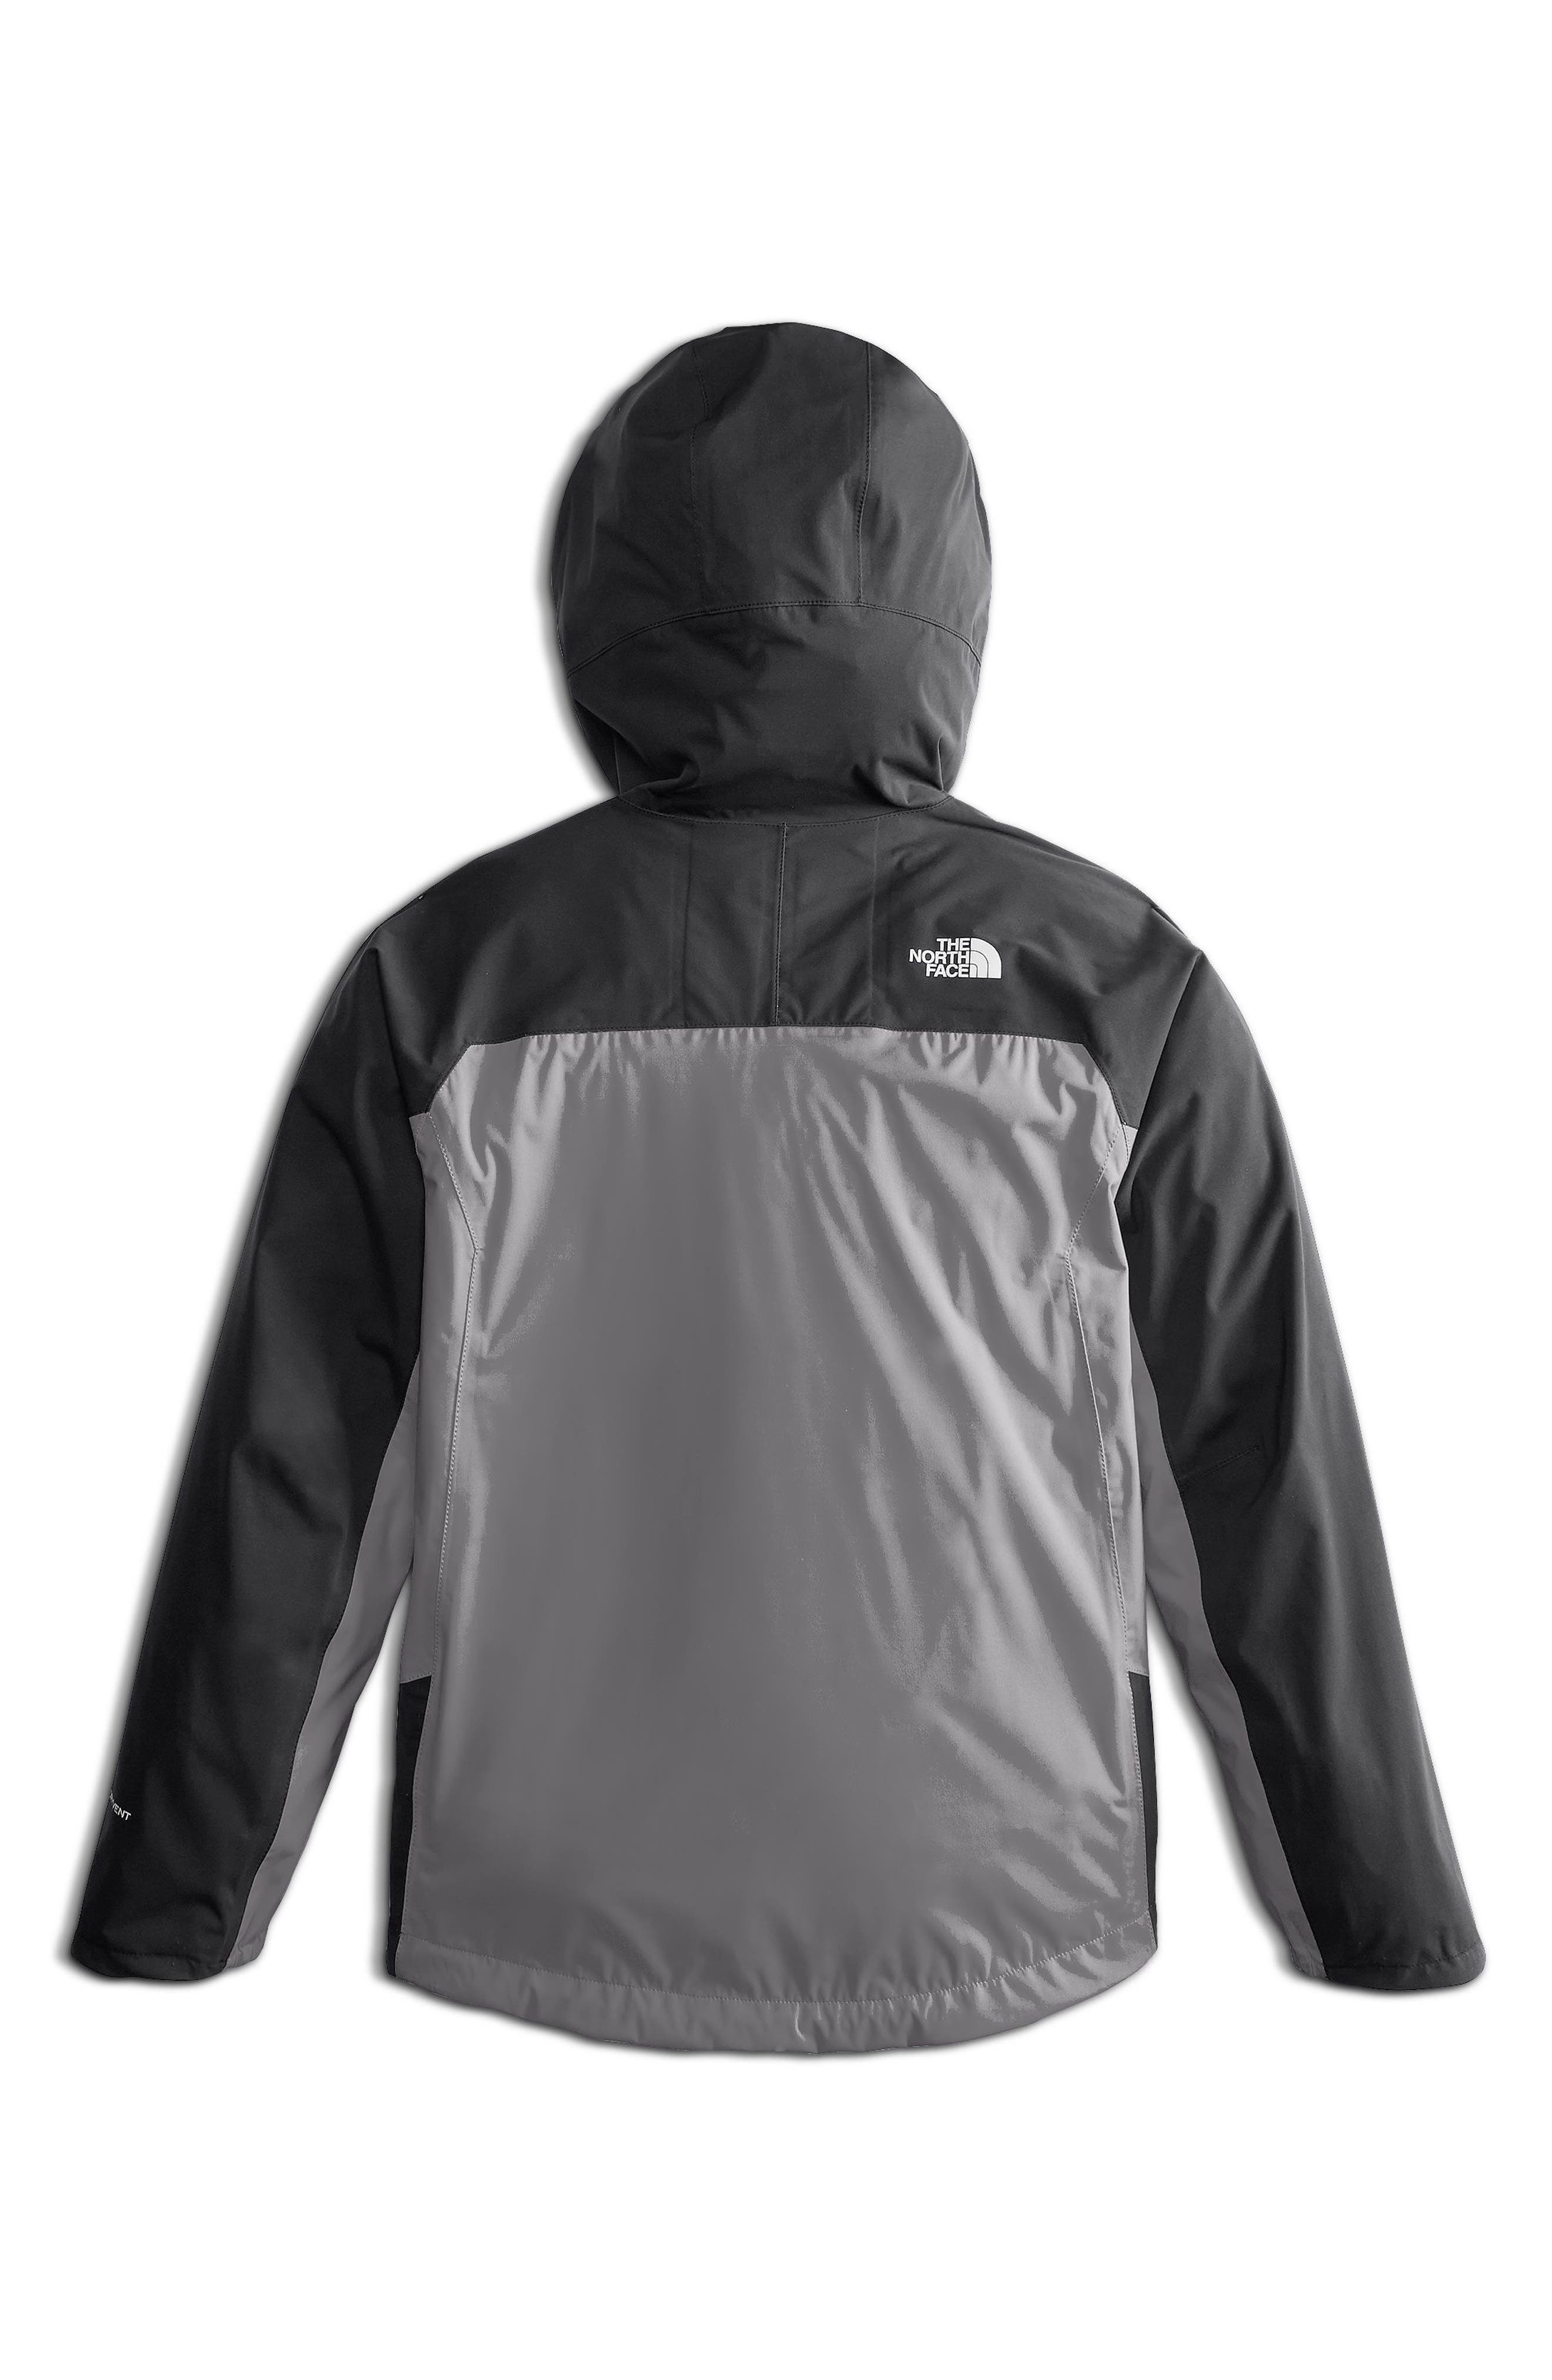 Allproof Stretch Hooded Rain Jacket,                             Alternate thumbnail 2, color,                             MID GREY